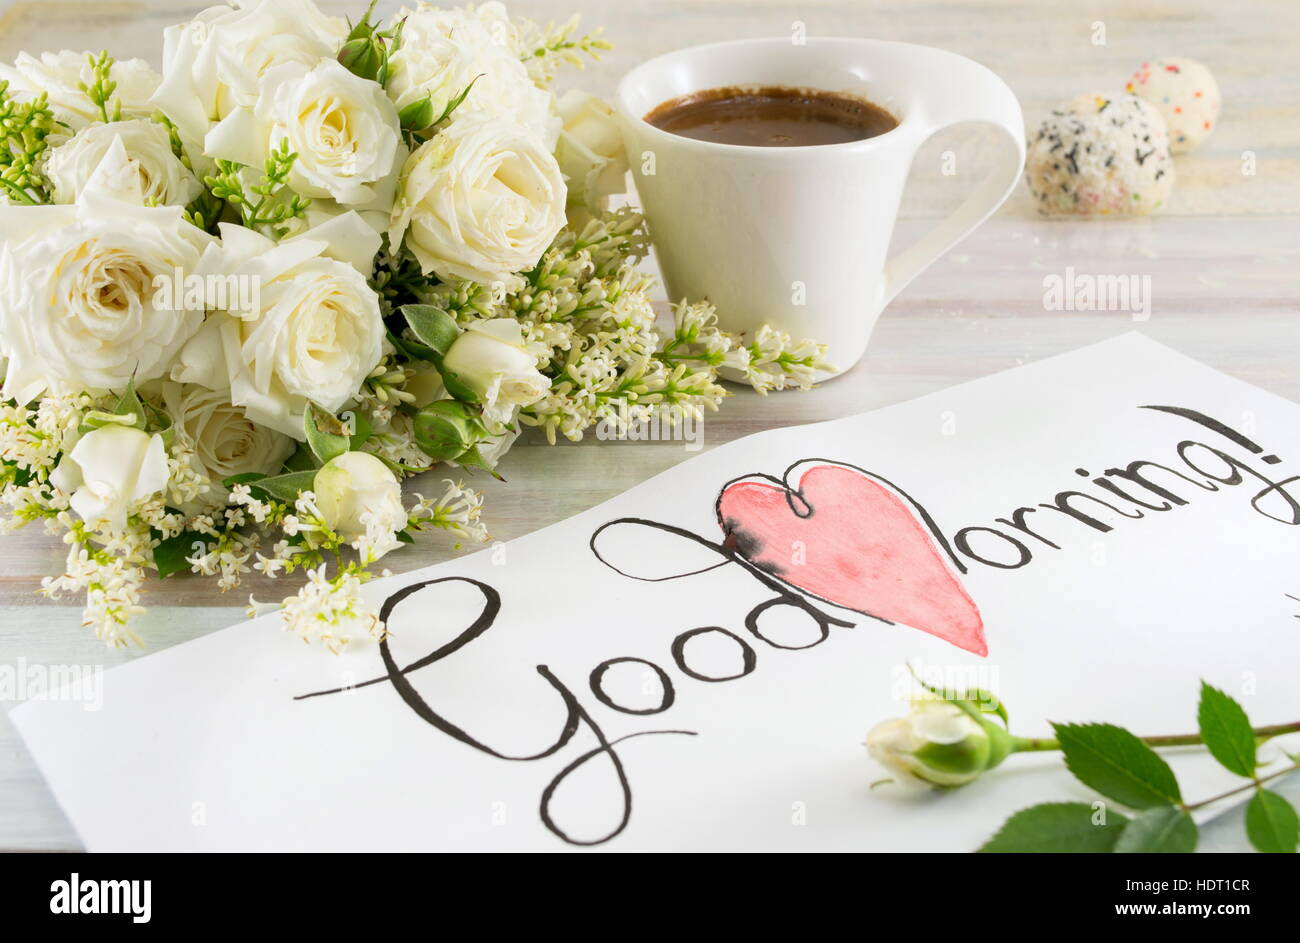 List Of Synonyms And Antonyms Of The Word Hd Good Morning Coffee